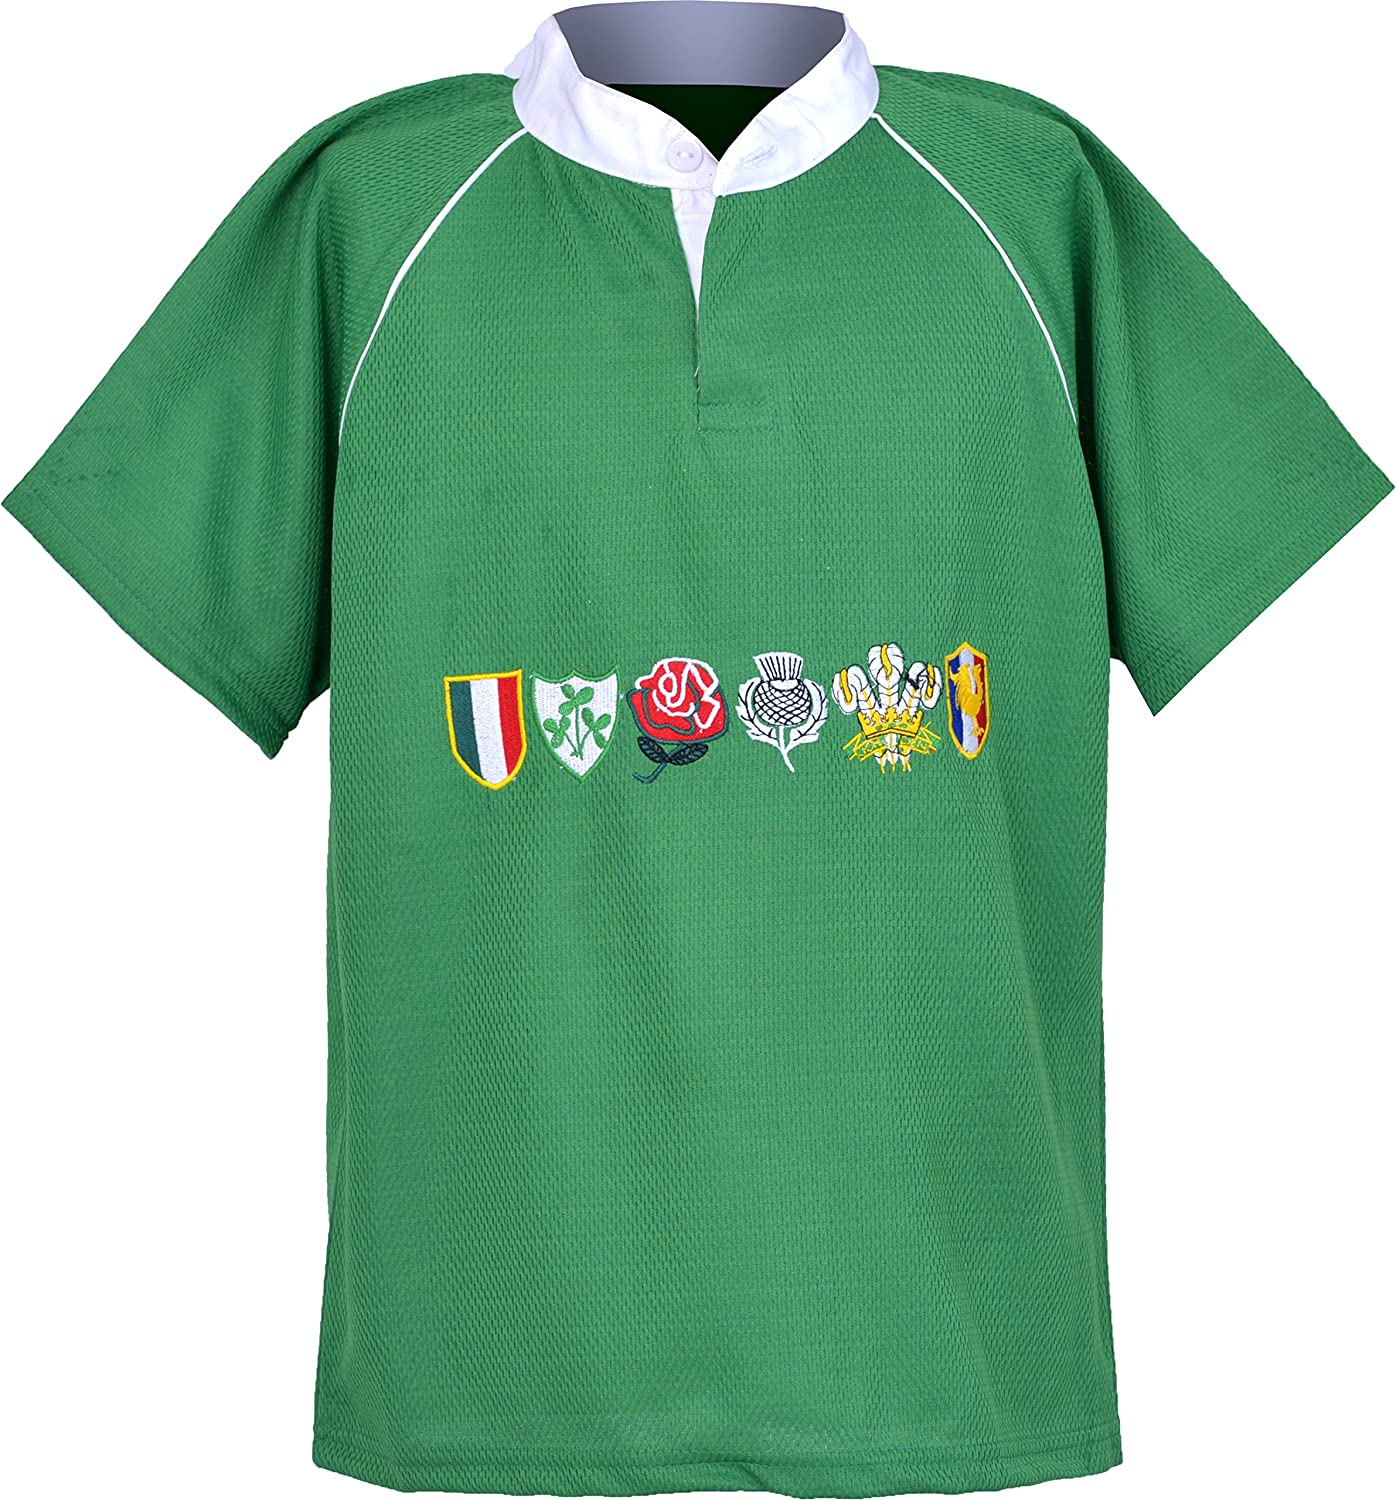 Activewear Children 6 Nation Rugby Shirts Size 3/4Y to 11/12 Year (M 5/6Y, EMERED Green) NMK6NRS01